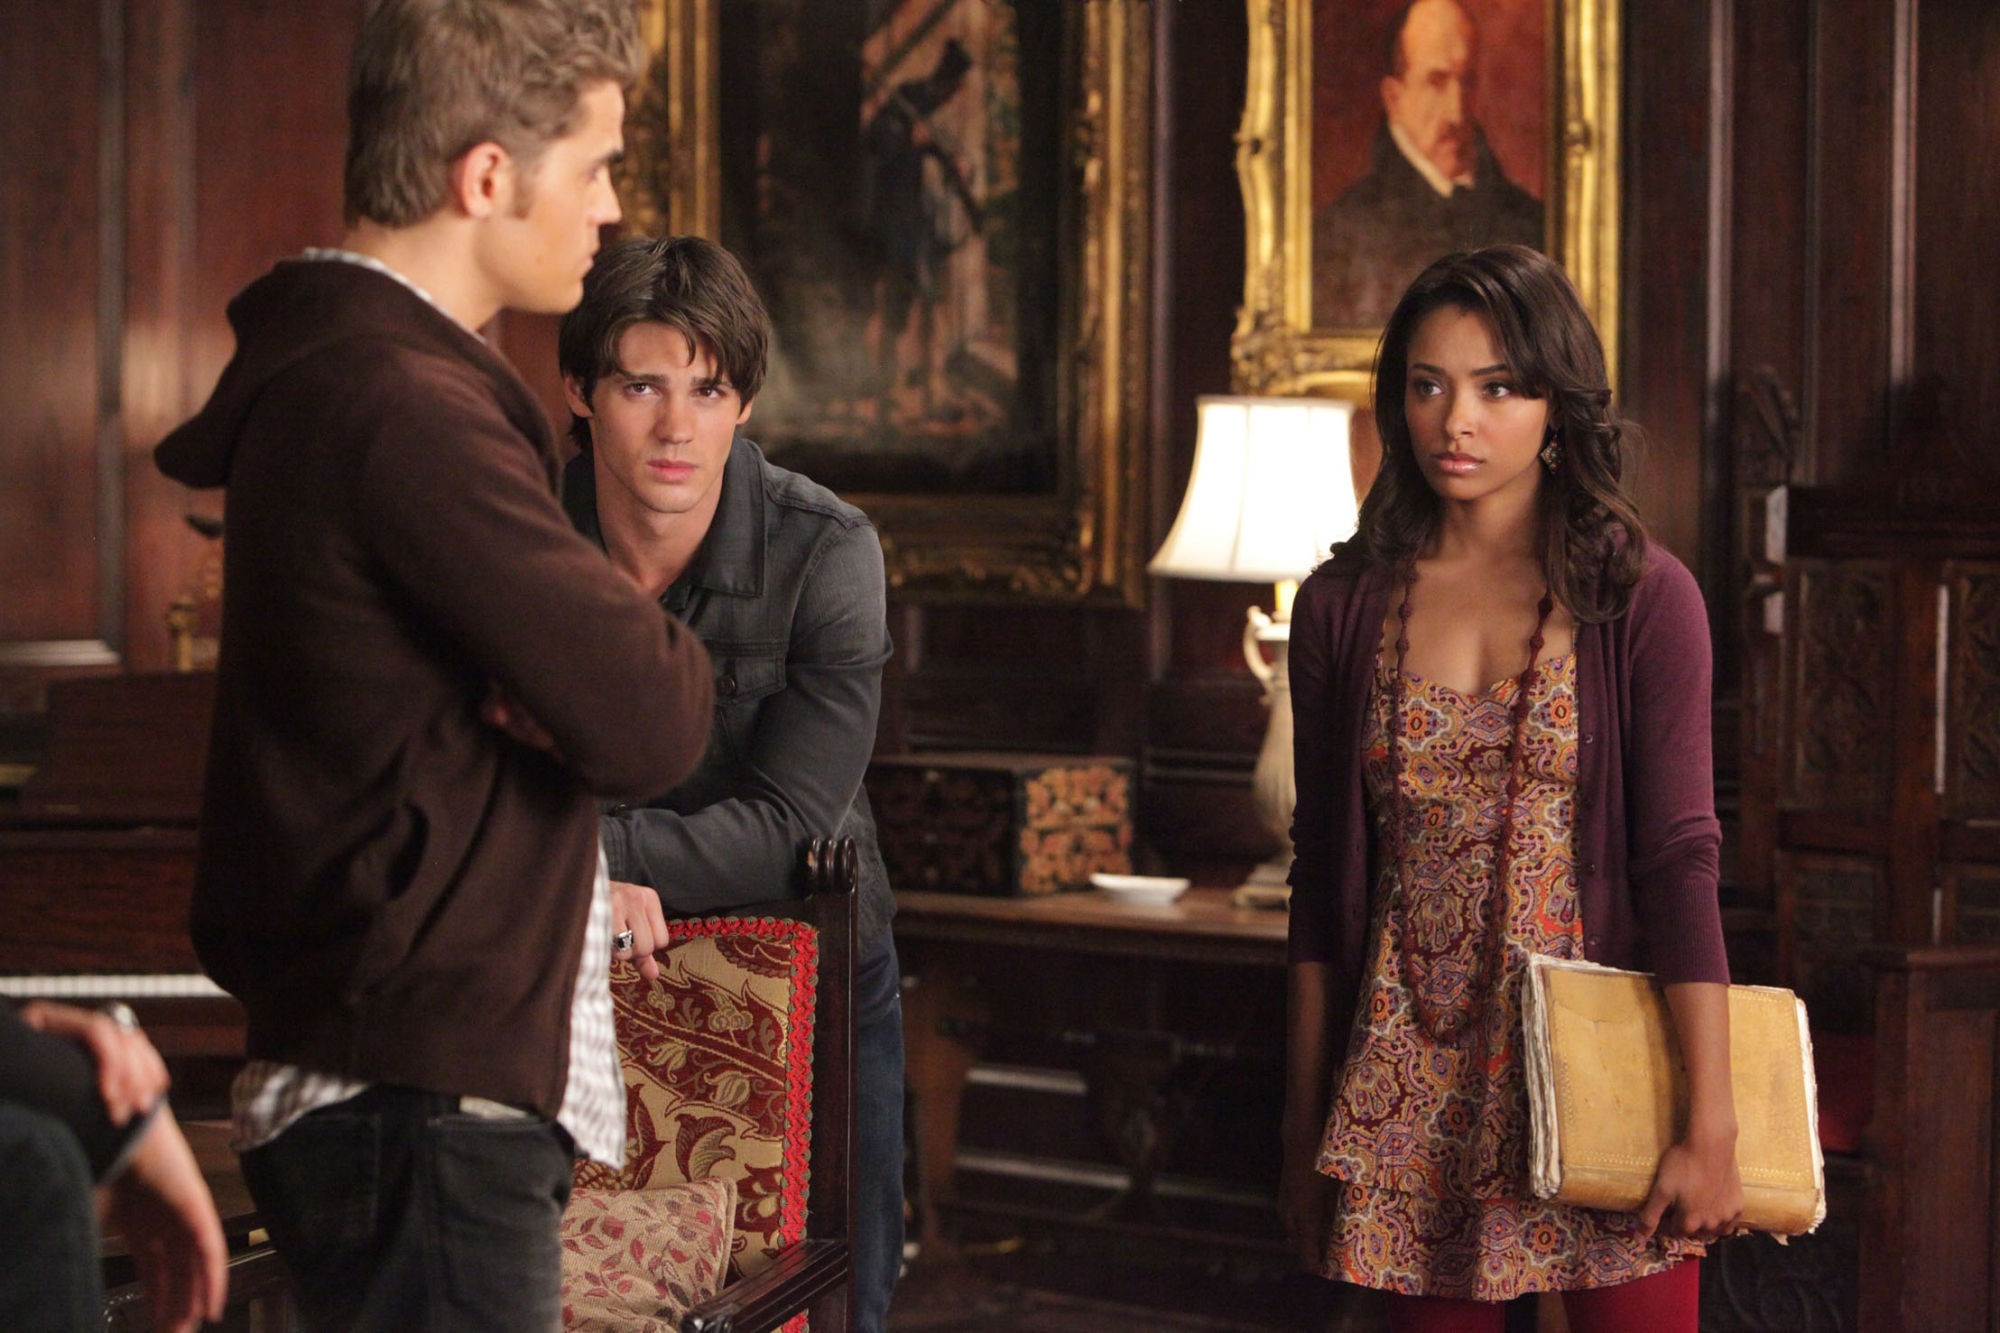 http://images4.fanpop.com/image/photos/16200000/2-07-Masquerade-the-vampire-diaries-16220724-2000-1333.jpg